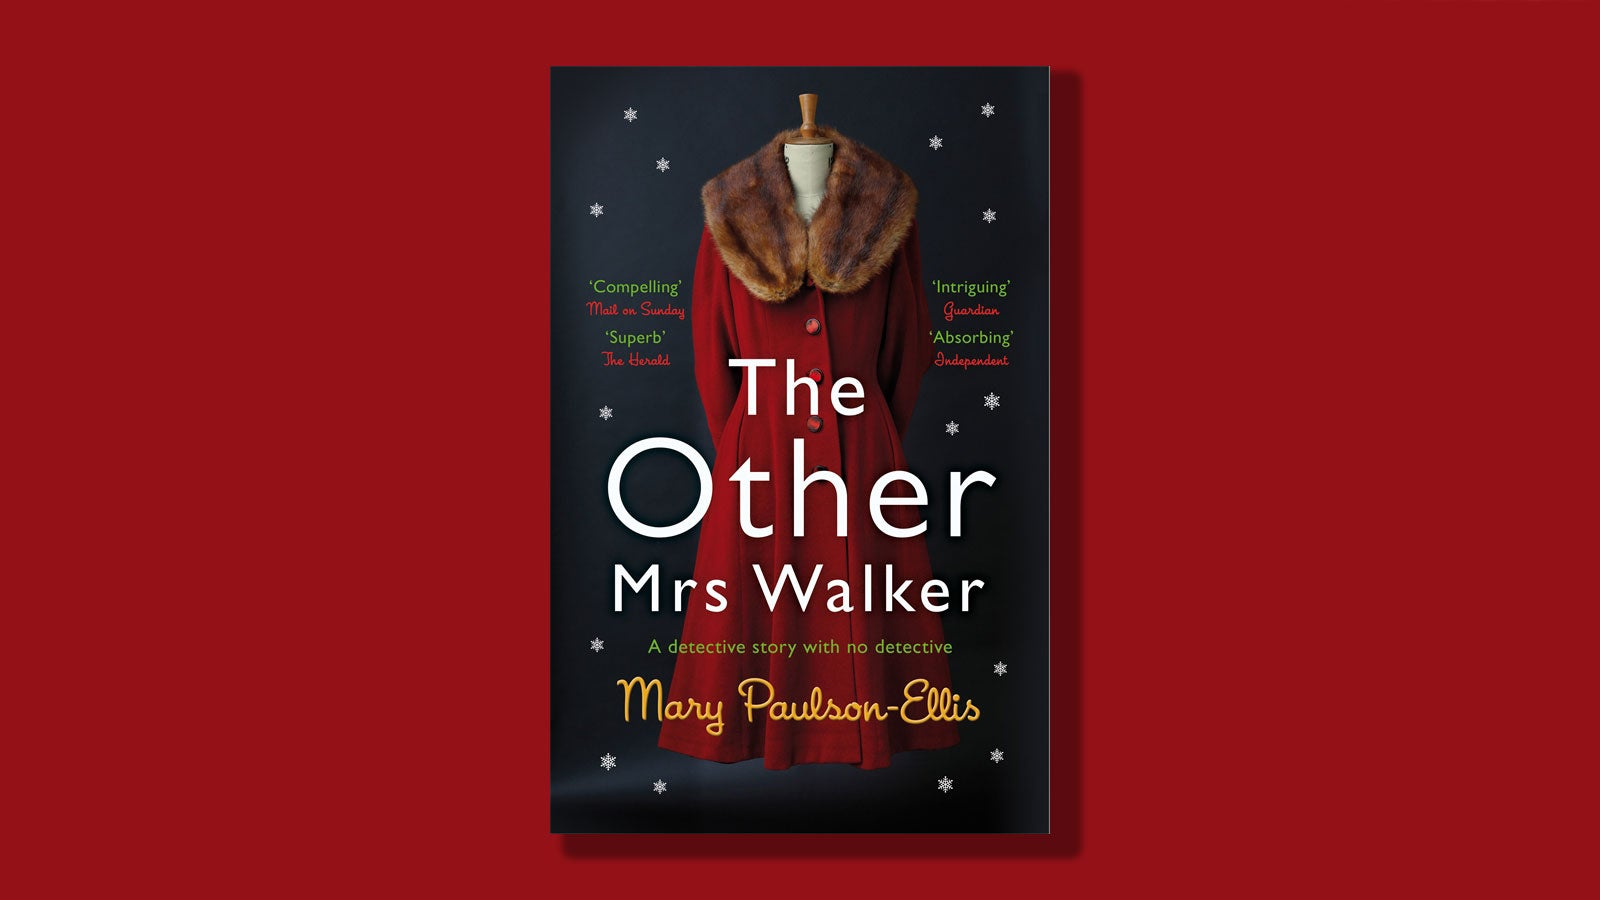 The Other Mrs Walker book cover on a red background